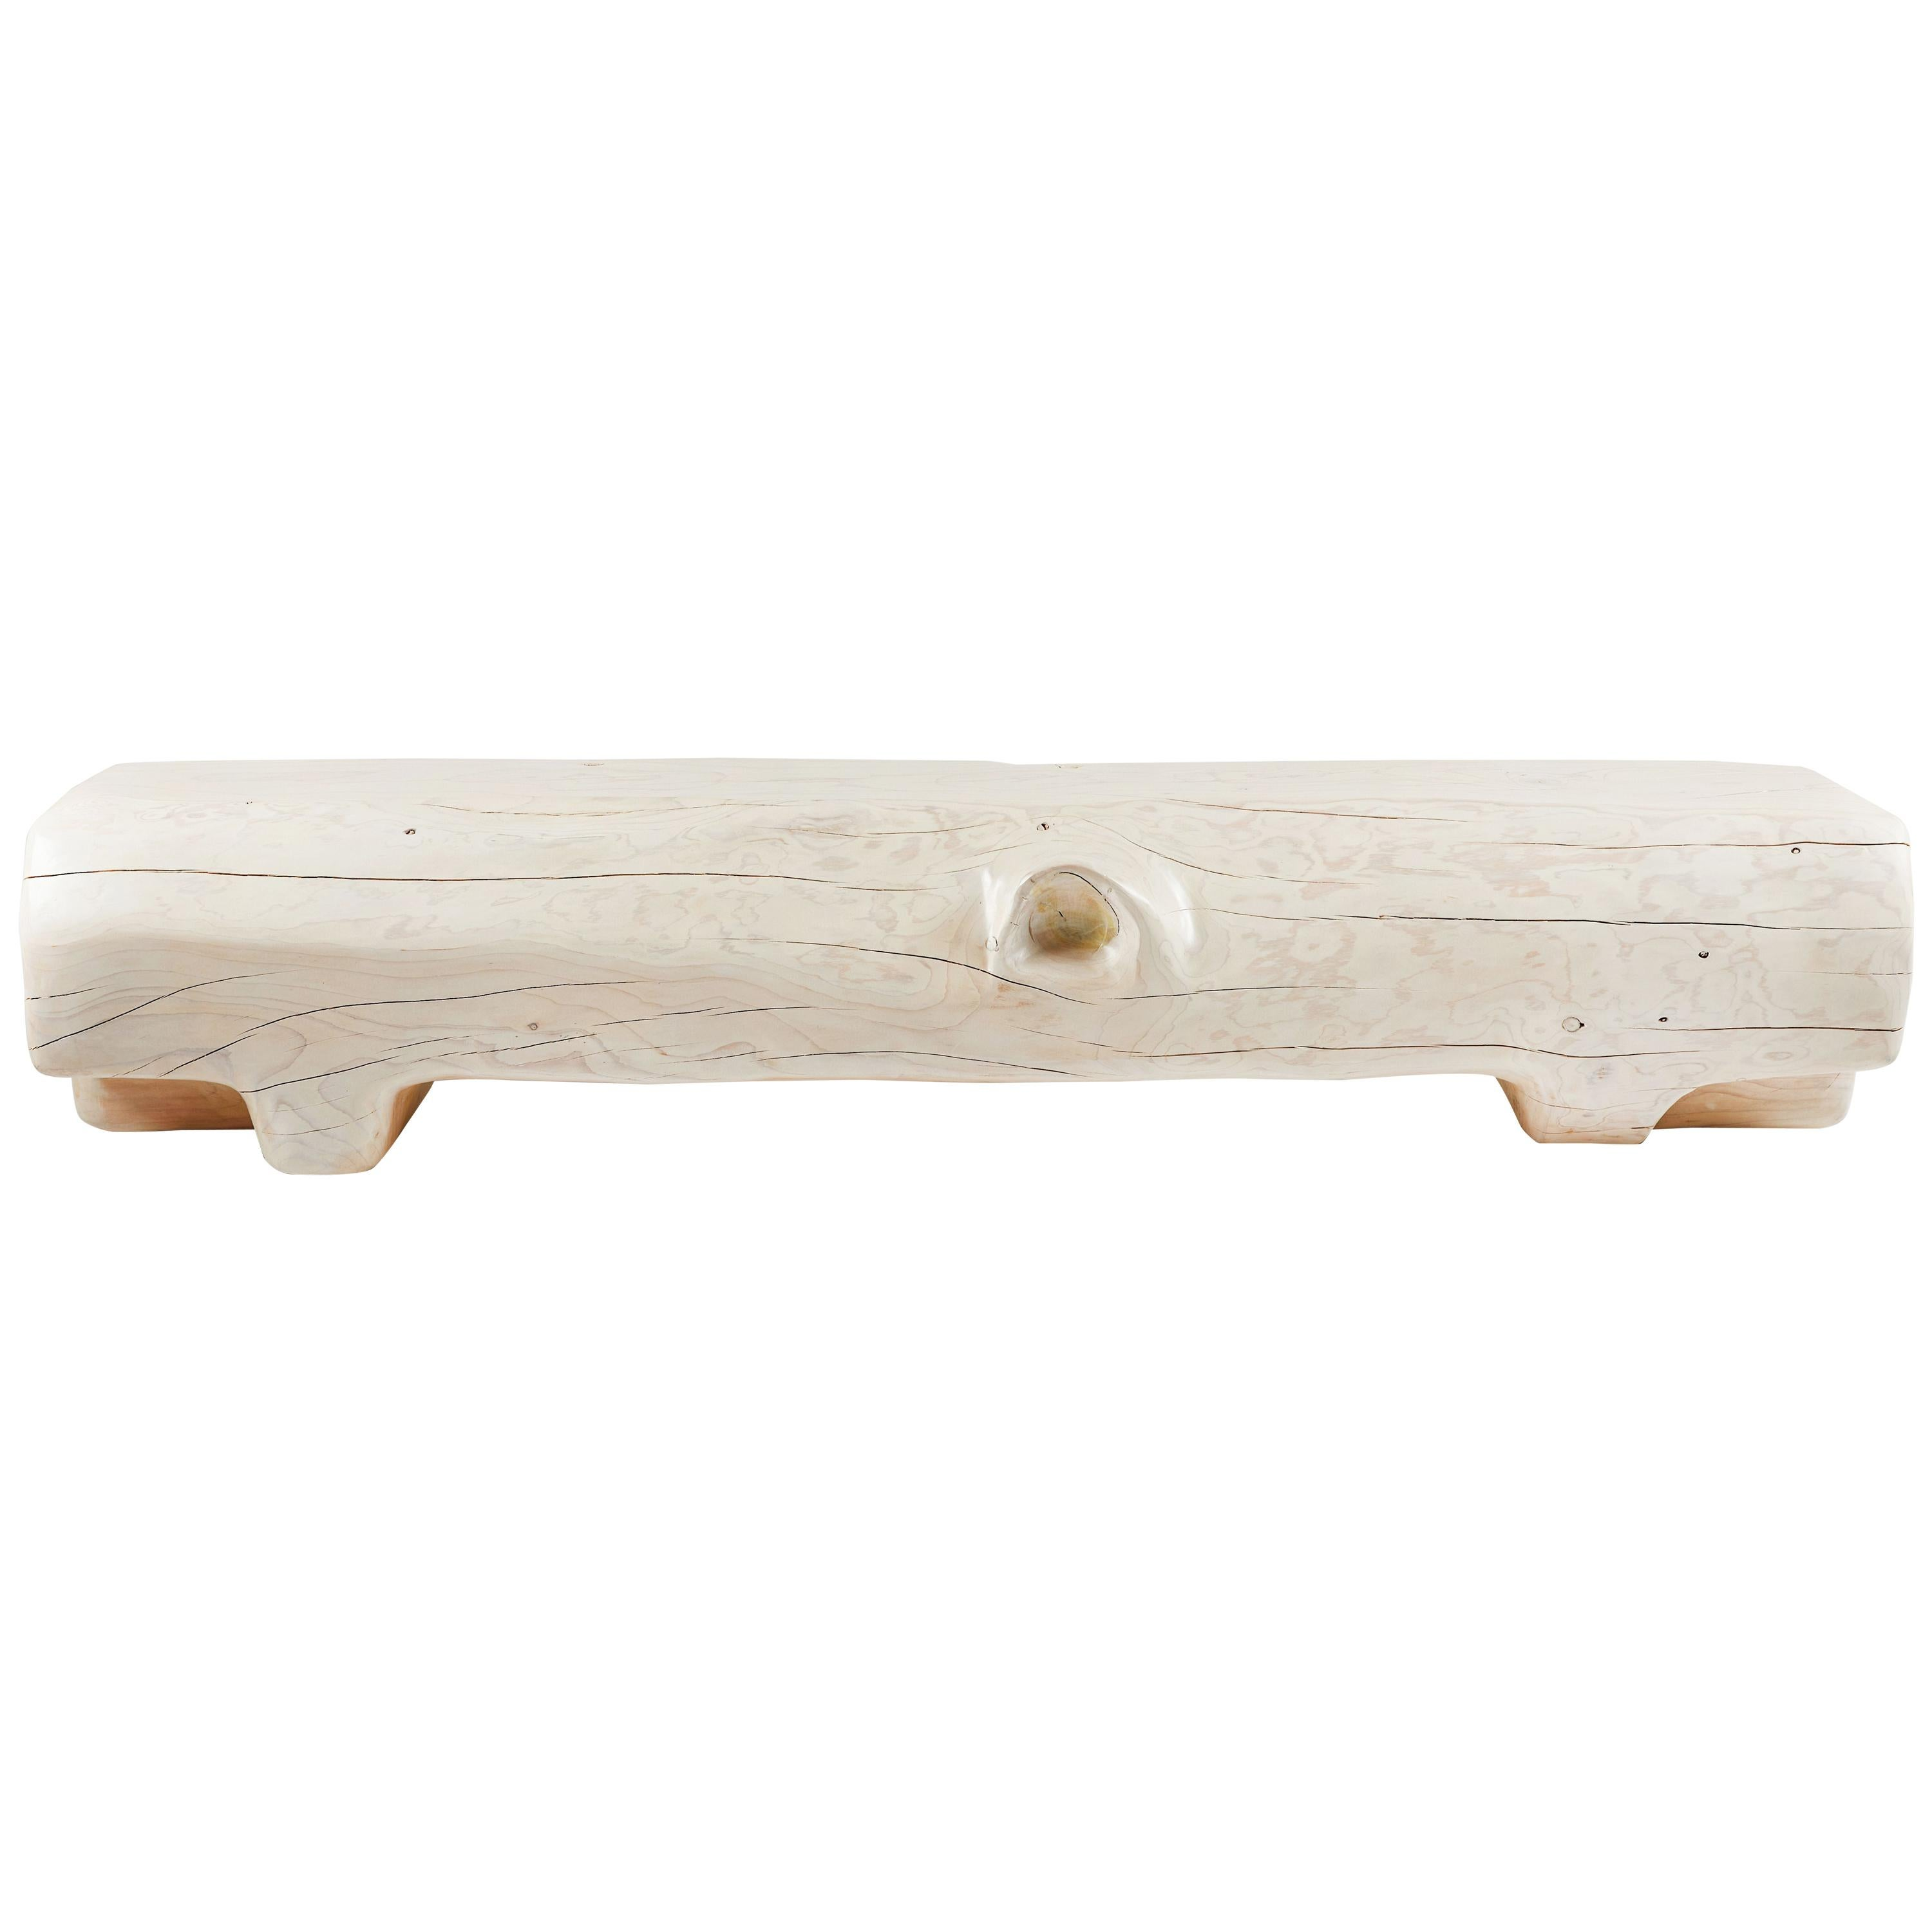 Organic Hand Carved and White Washed Cedar Bench by Casey McCafferty